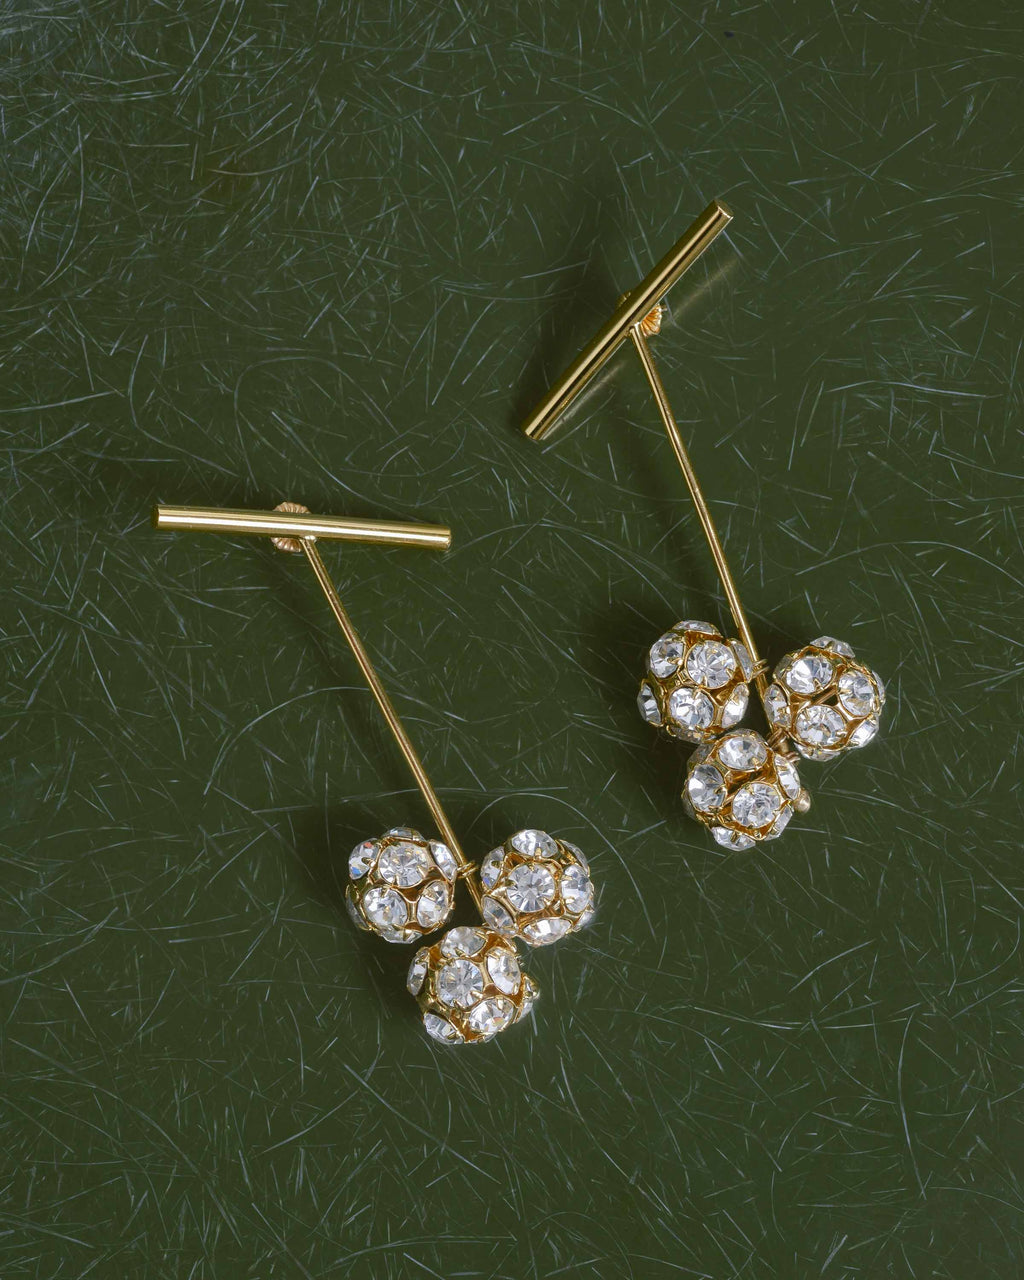 14k Gold Plated Brass Sputnik Earrings